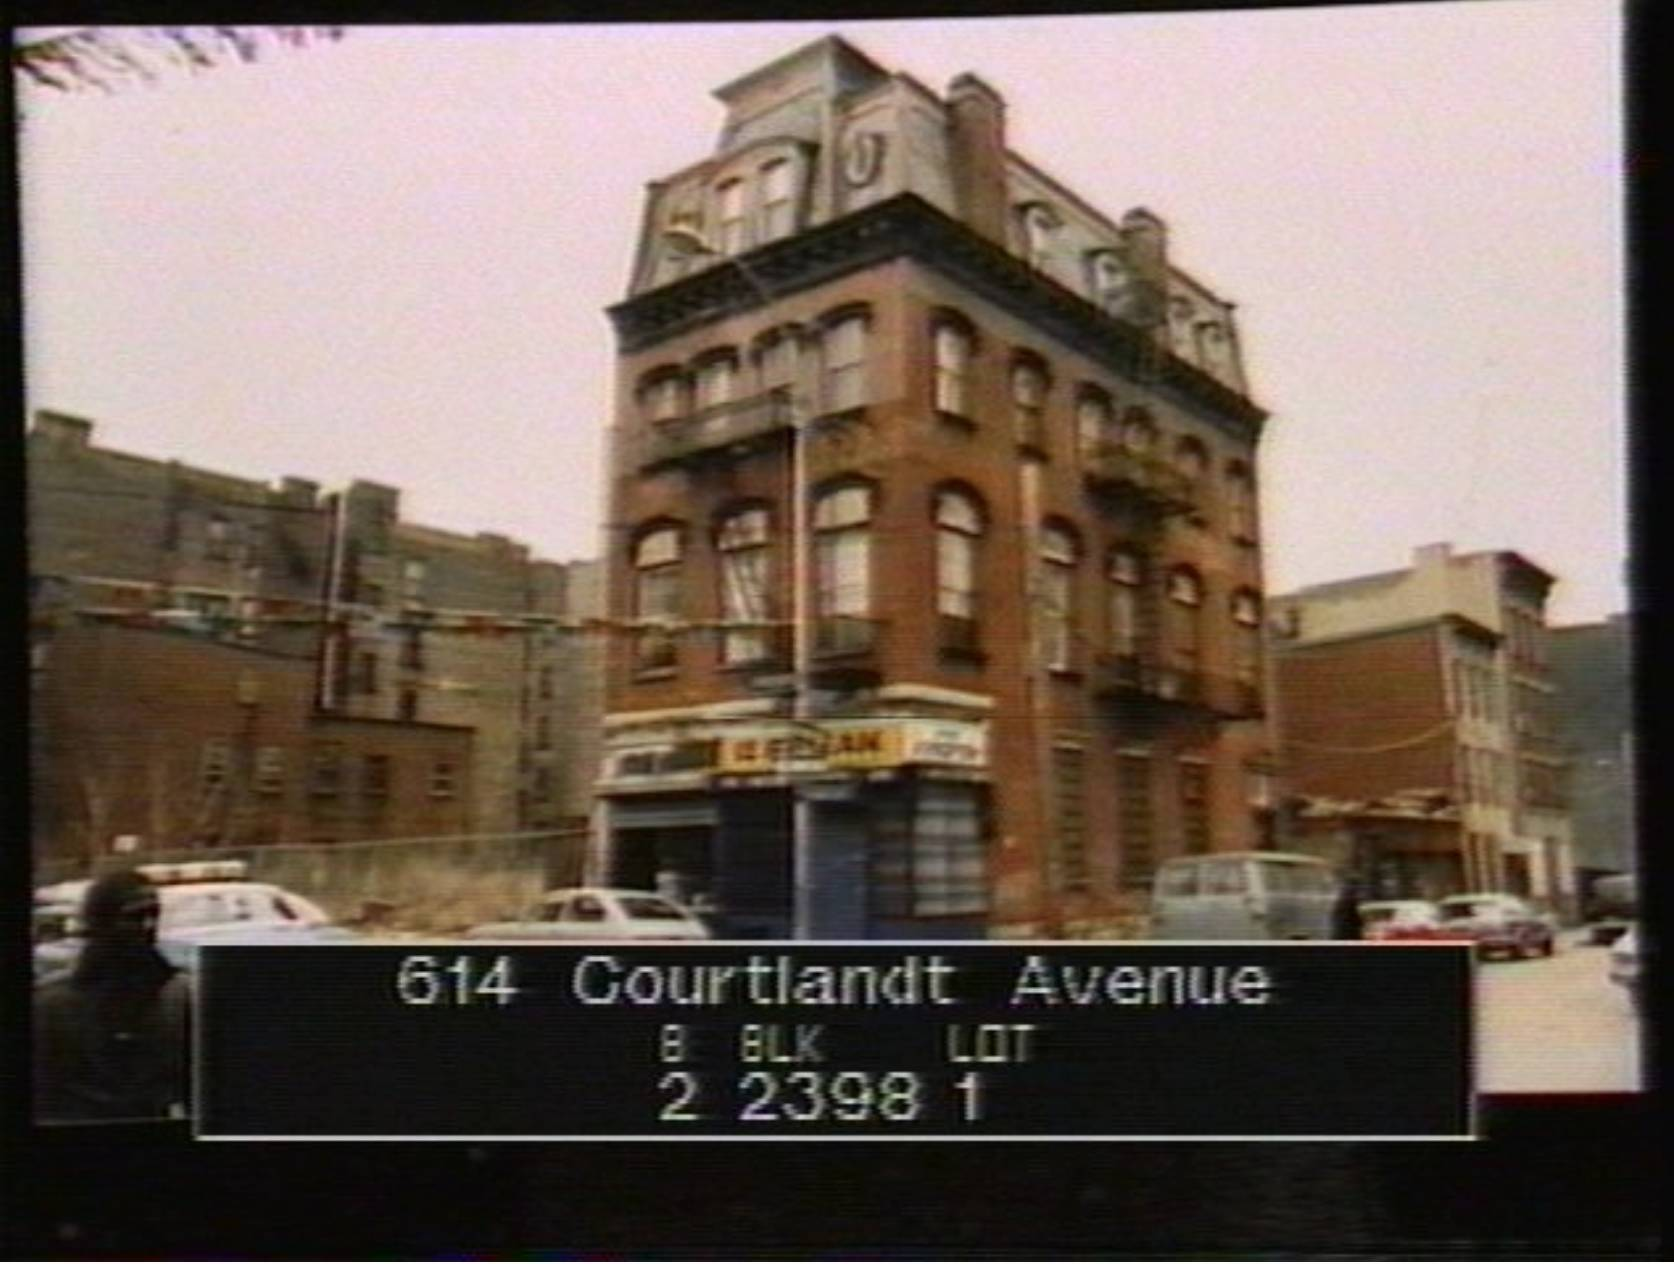 1983-1988 (Image from NYC Department of Records and Information Services)